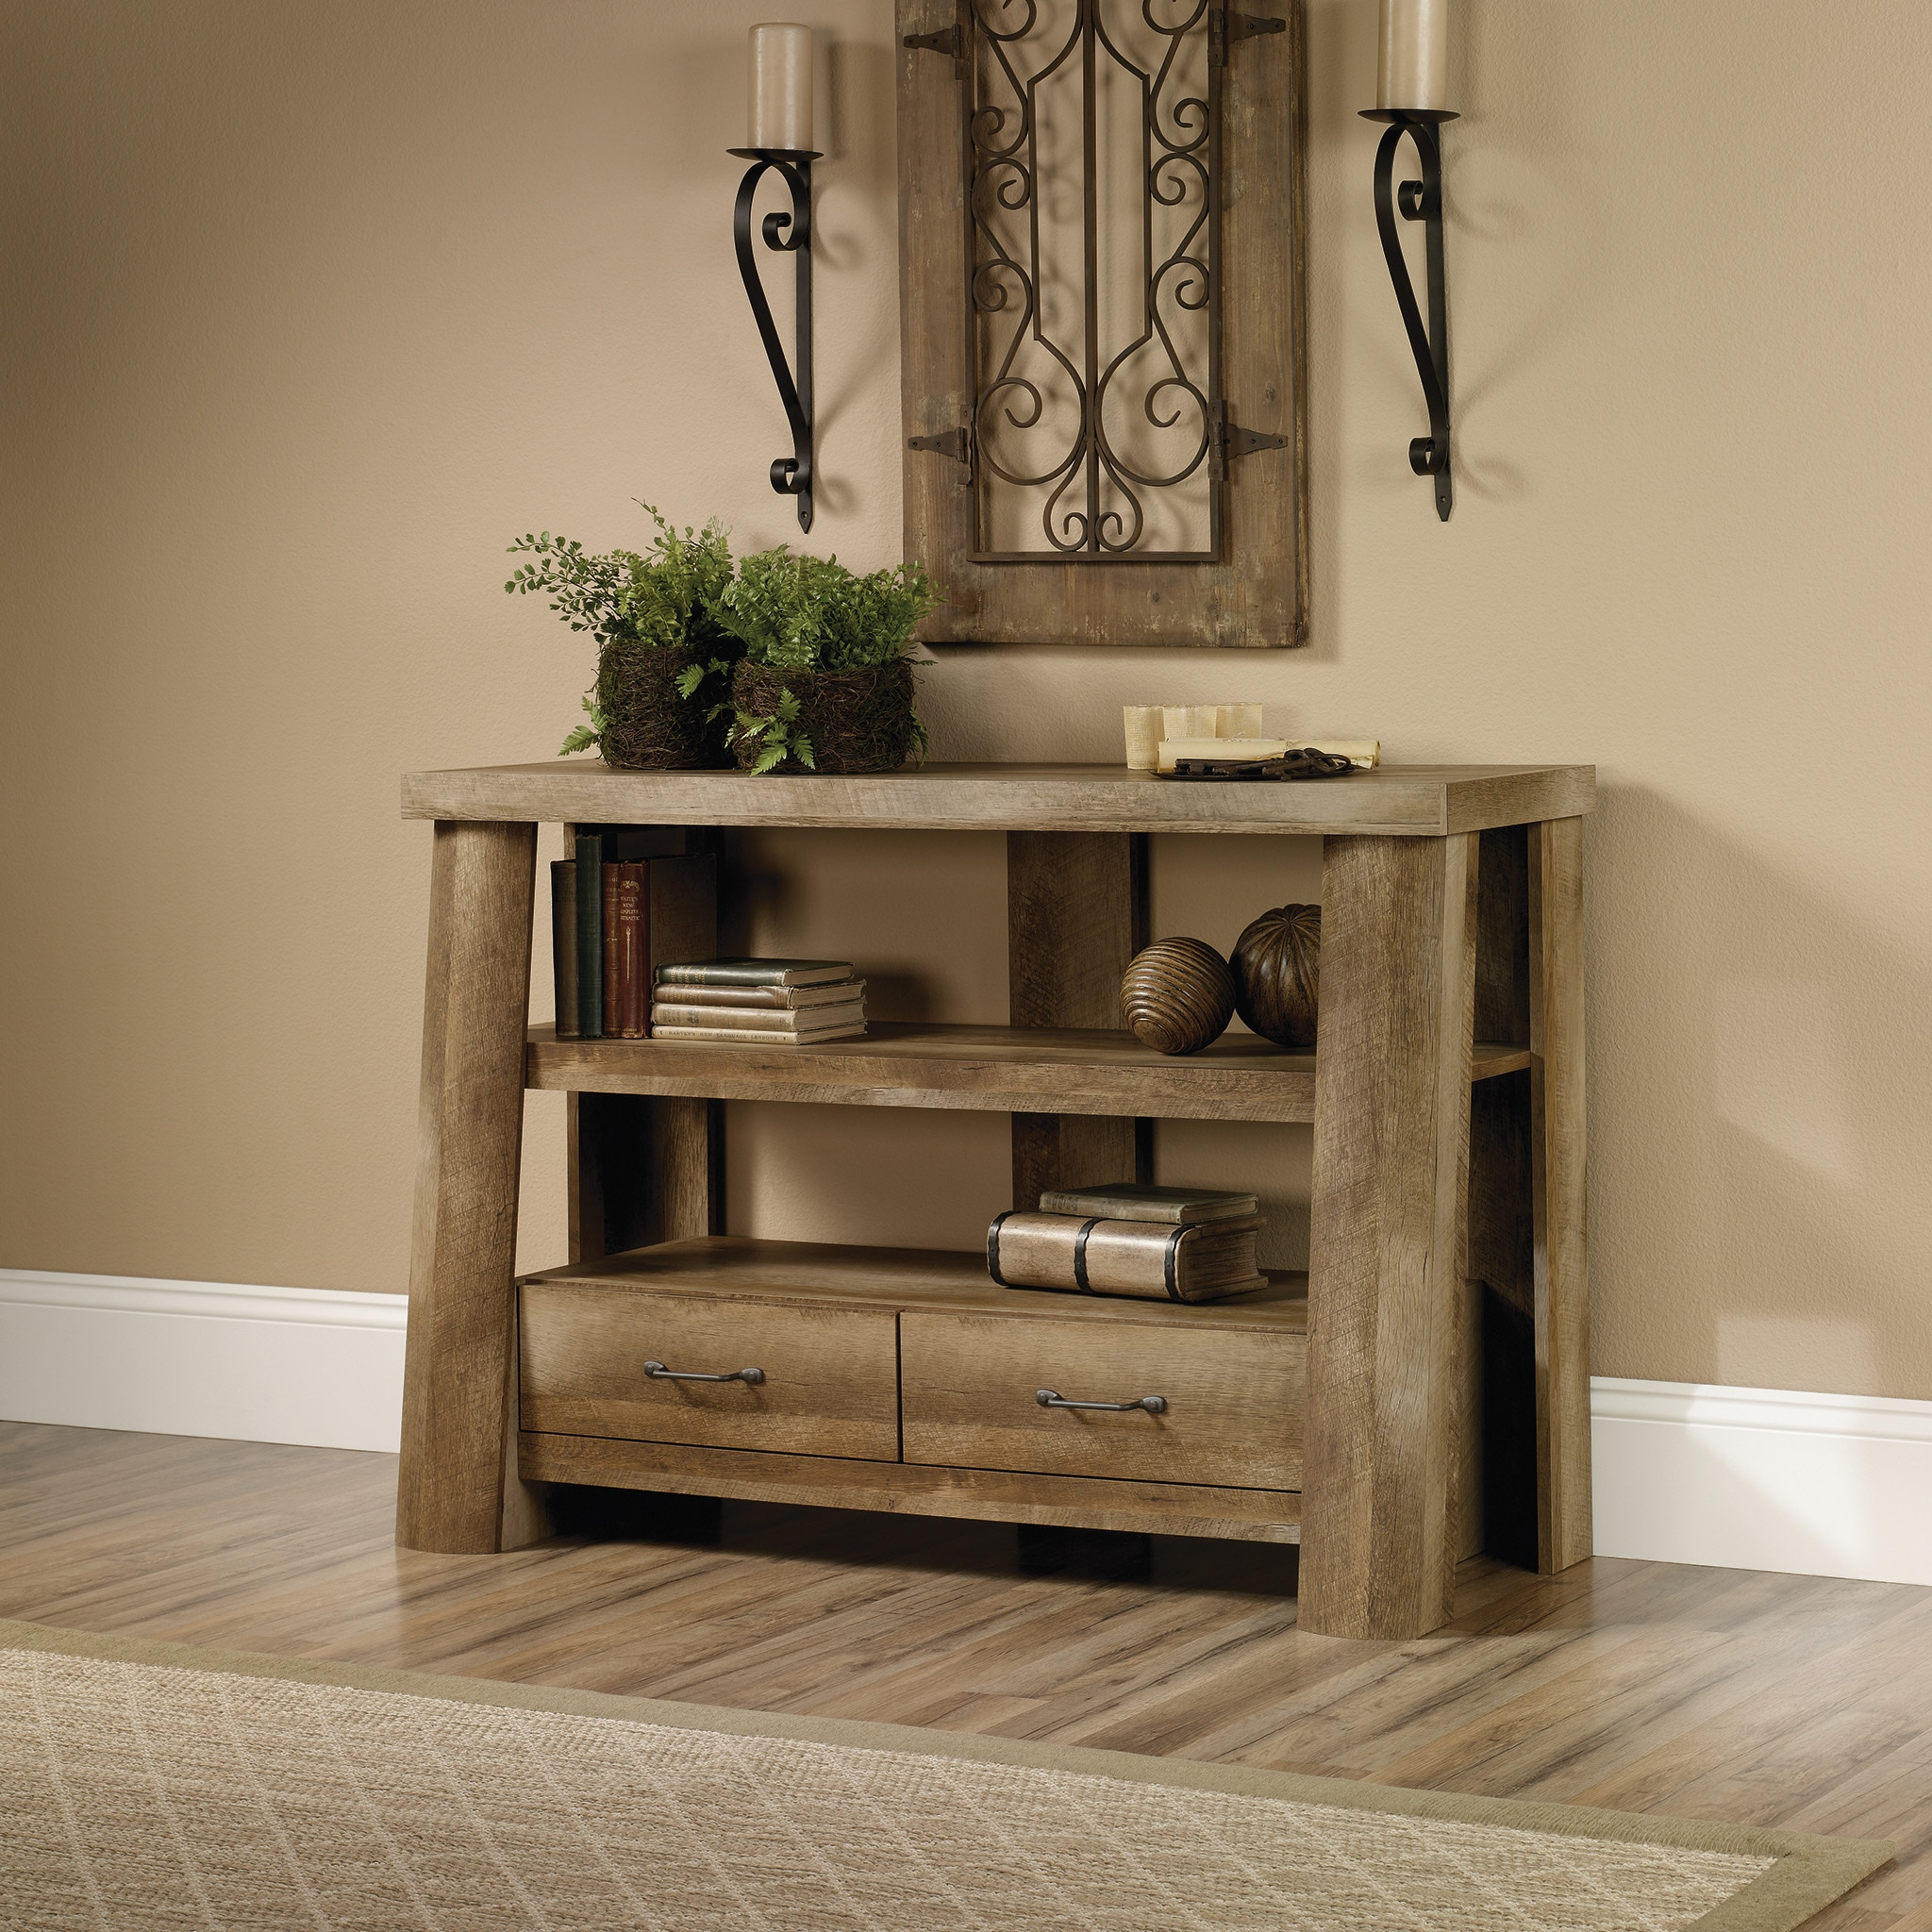 Boone Mountain Anywhere Console - Craftsman Oak